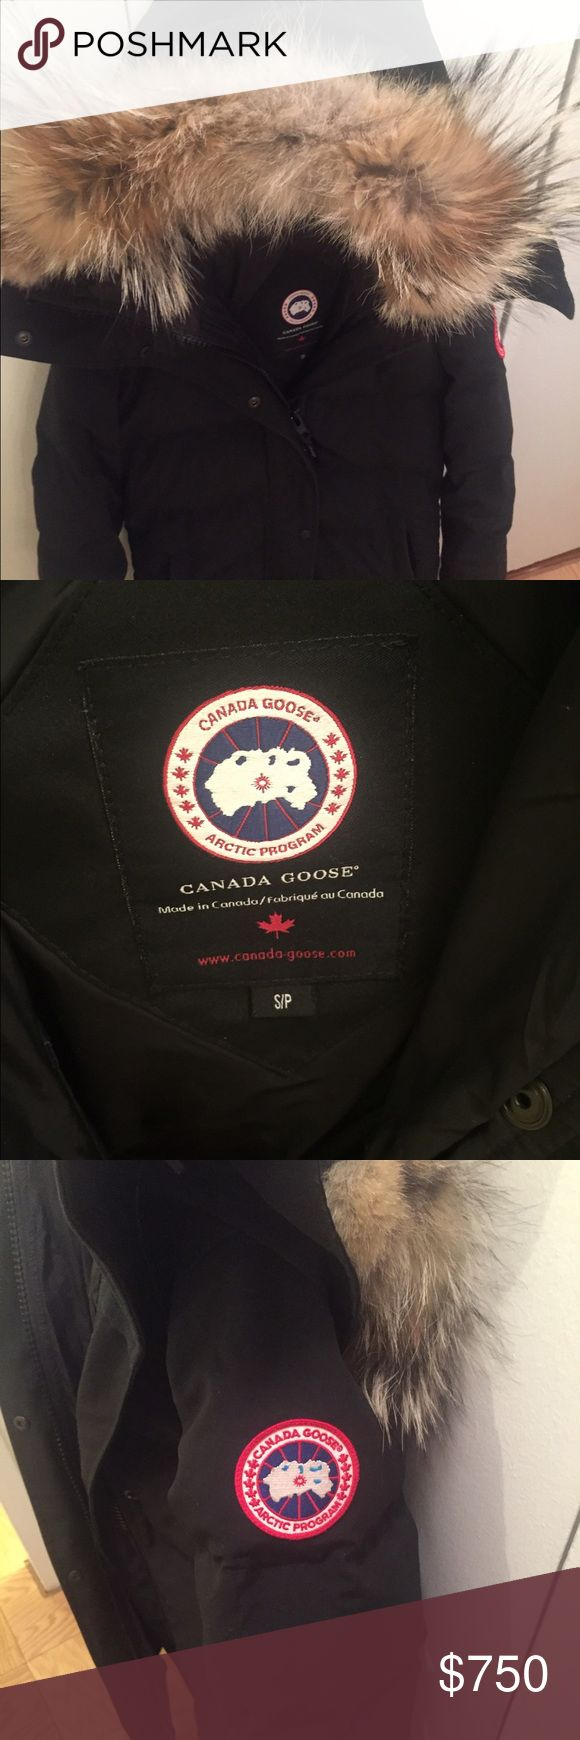 Canadian Goose Shelburne Parka This lightly used size S/P Canada Goose Shelburne Parka is sure to keep you warm on the coldest of days, while looking chic at the same time! This Parka is great for everyday use and for extreme weather. The fit is slim and is thigh length. It is filled with the company's famously warm white duck down, with a removable coyote fur hood.  It has exterior fleece-lined handwarmer pockets, a storm flap over centre front zipper, and interior shoulder straps. Great…